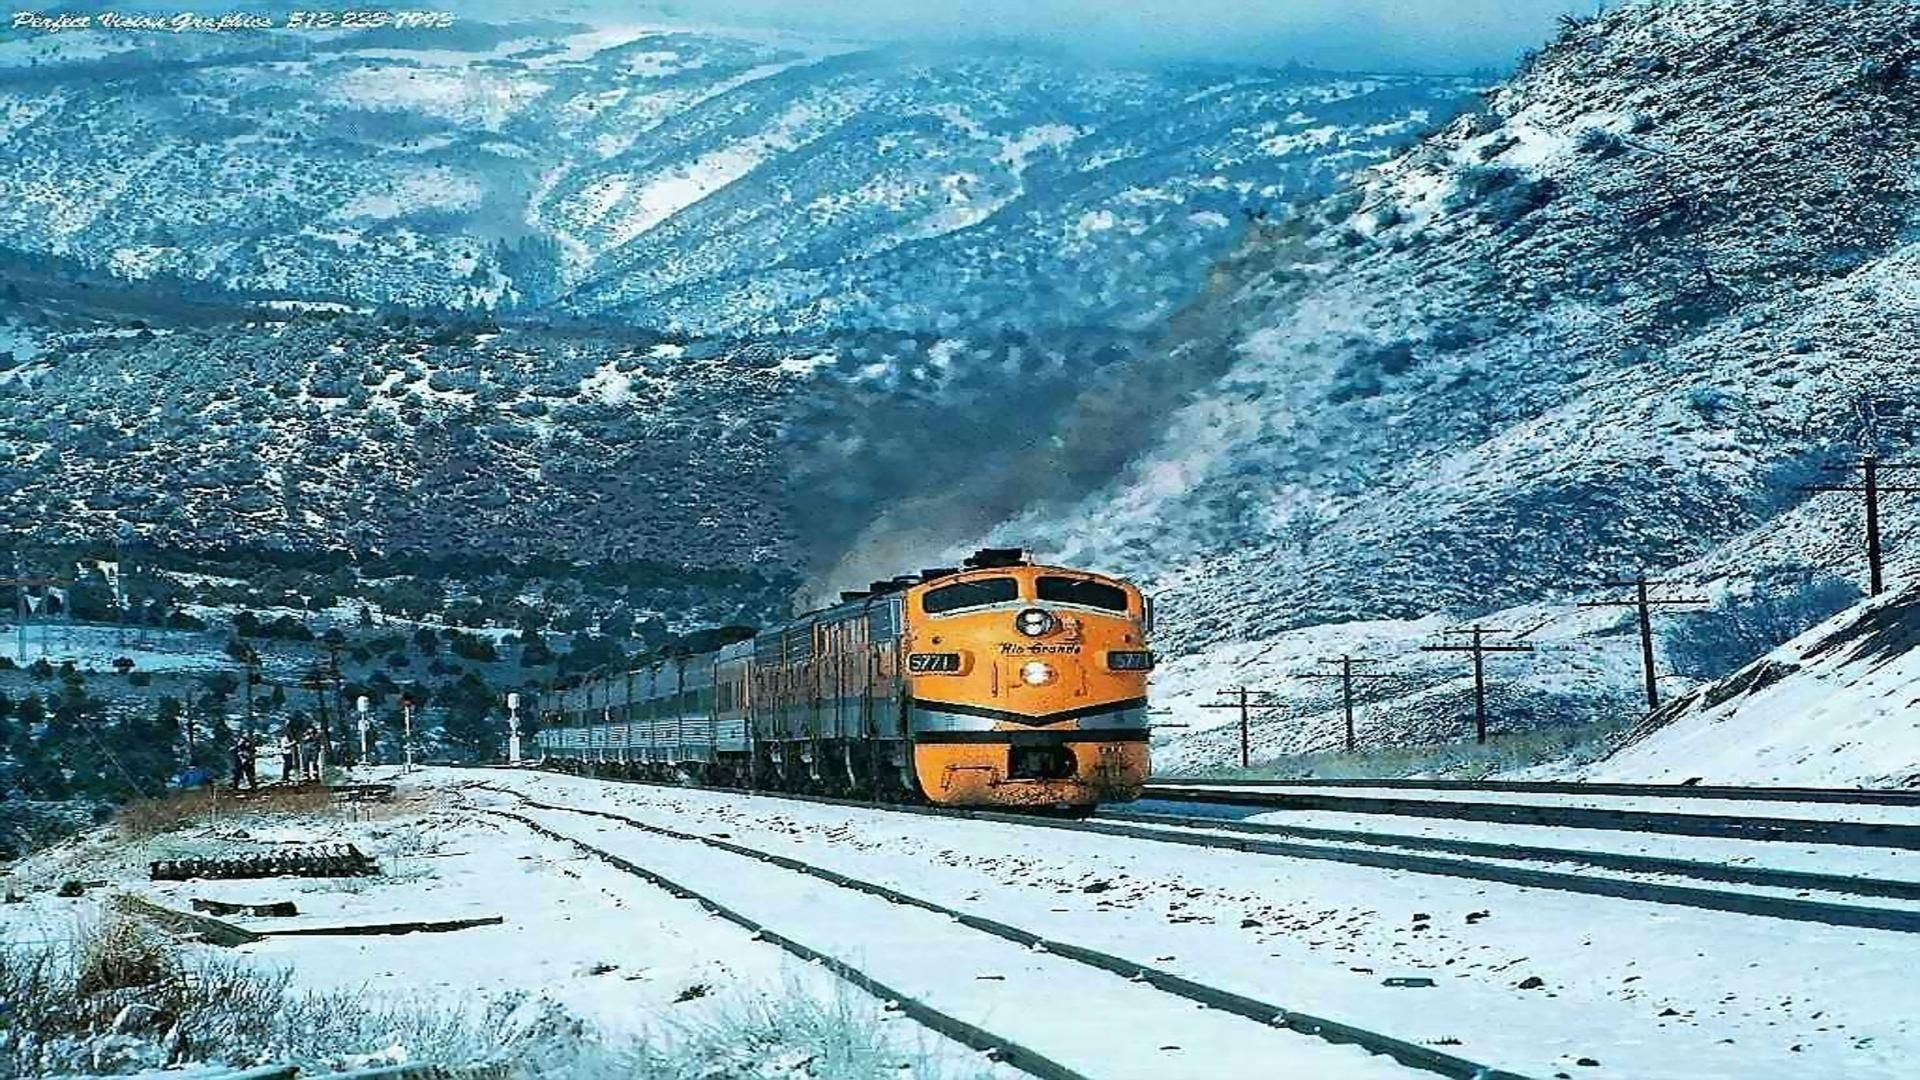 train in mountains at winter free desktop background trains in the snow pinterest desktop backgrounds wallpapers and pictures